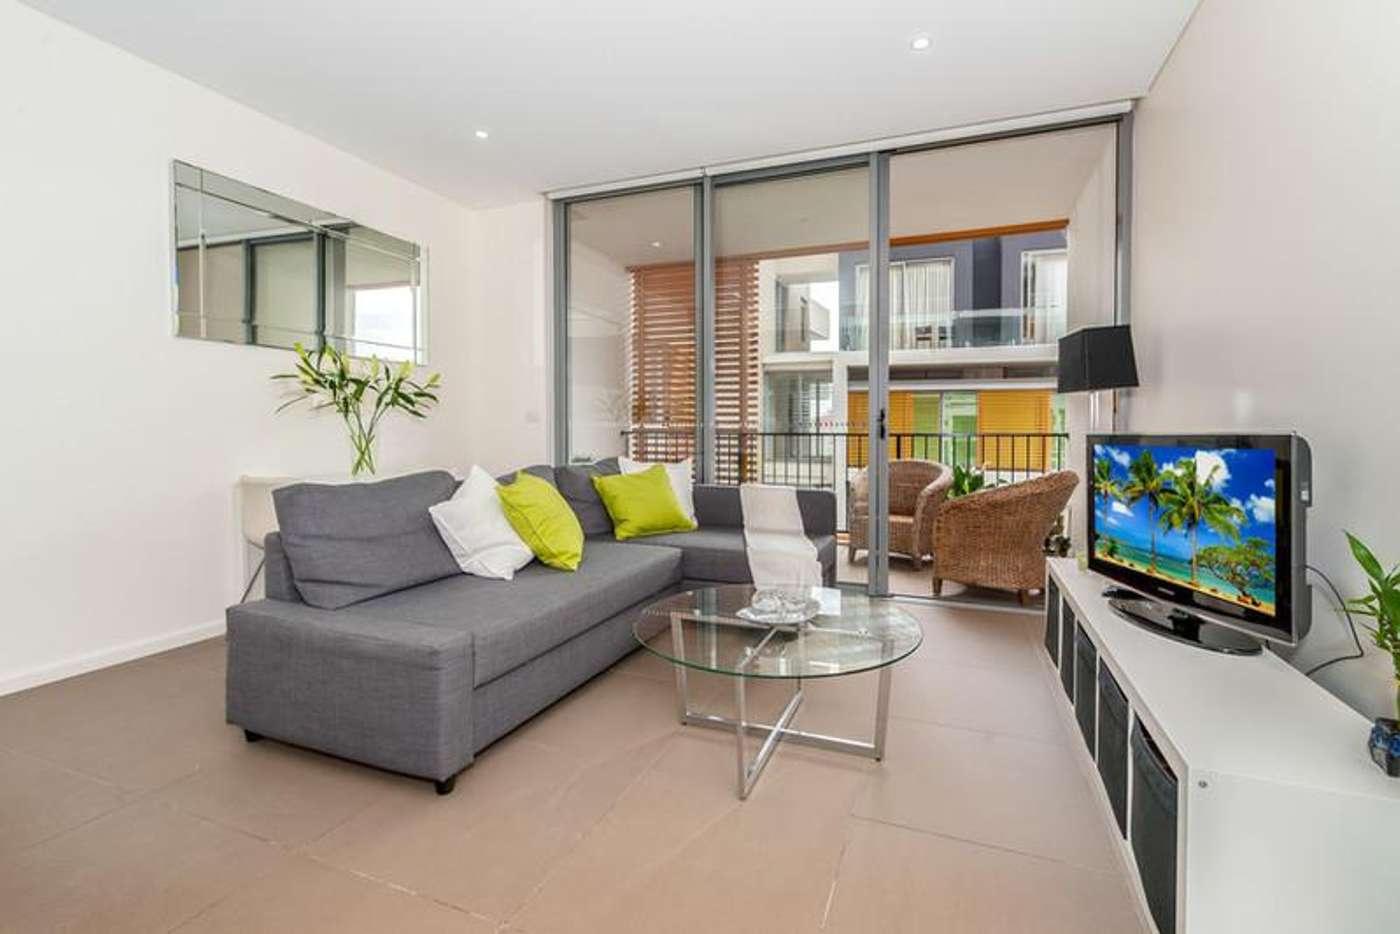 Main view of Homely apartment listing, 313/9-15 Ascot Street, Kensington NSW 2033